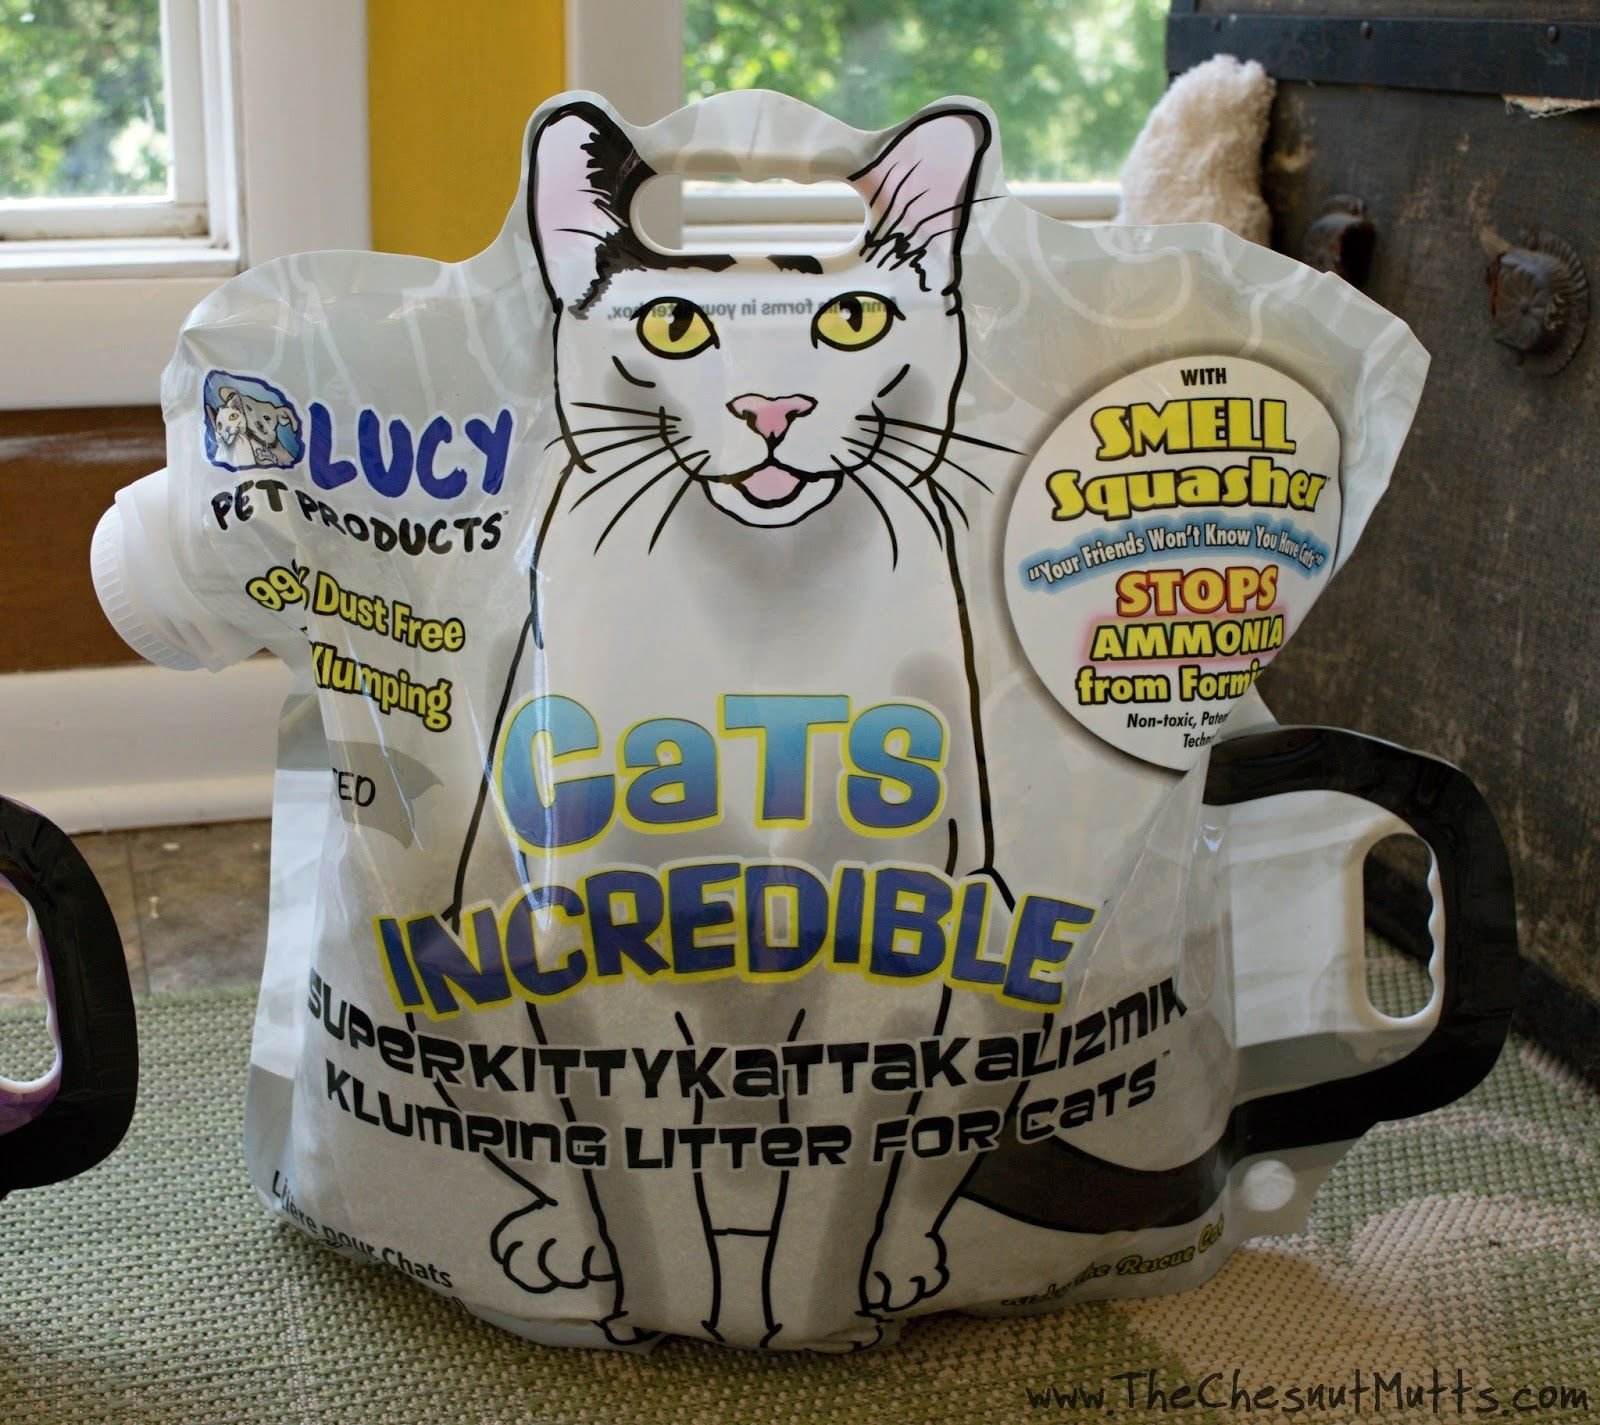 Lucy pet products cats incredible the incredibles